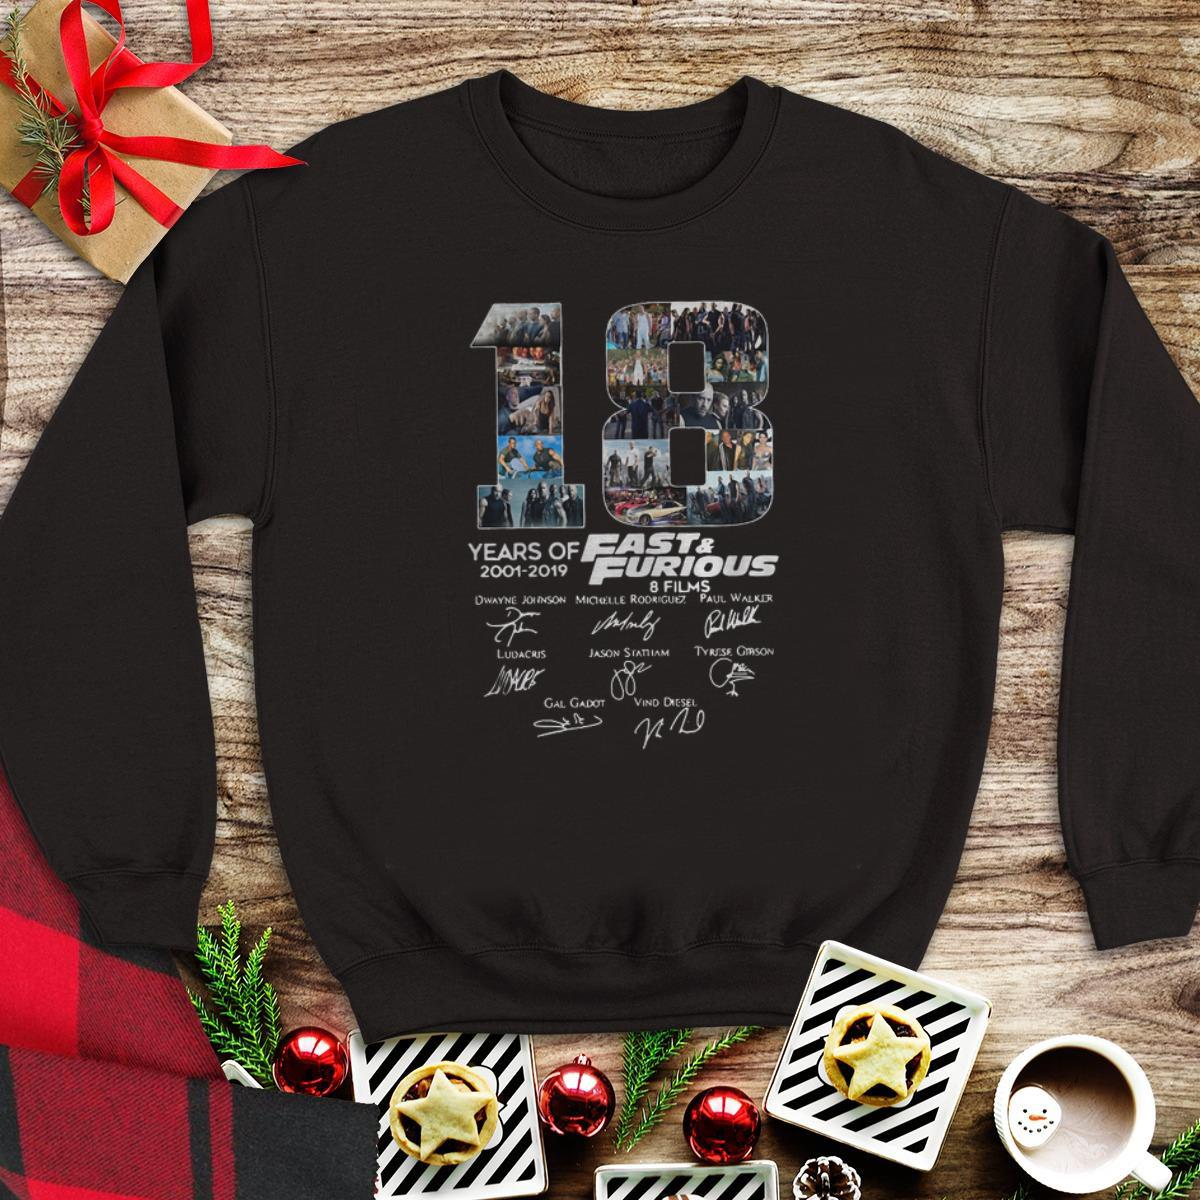 18 Years Of Fast And Furious 8 Films Signature sweater 1 - 18 Years Of Fast And Furious 8 Films Signature sweater